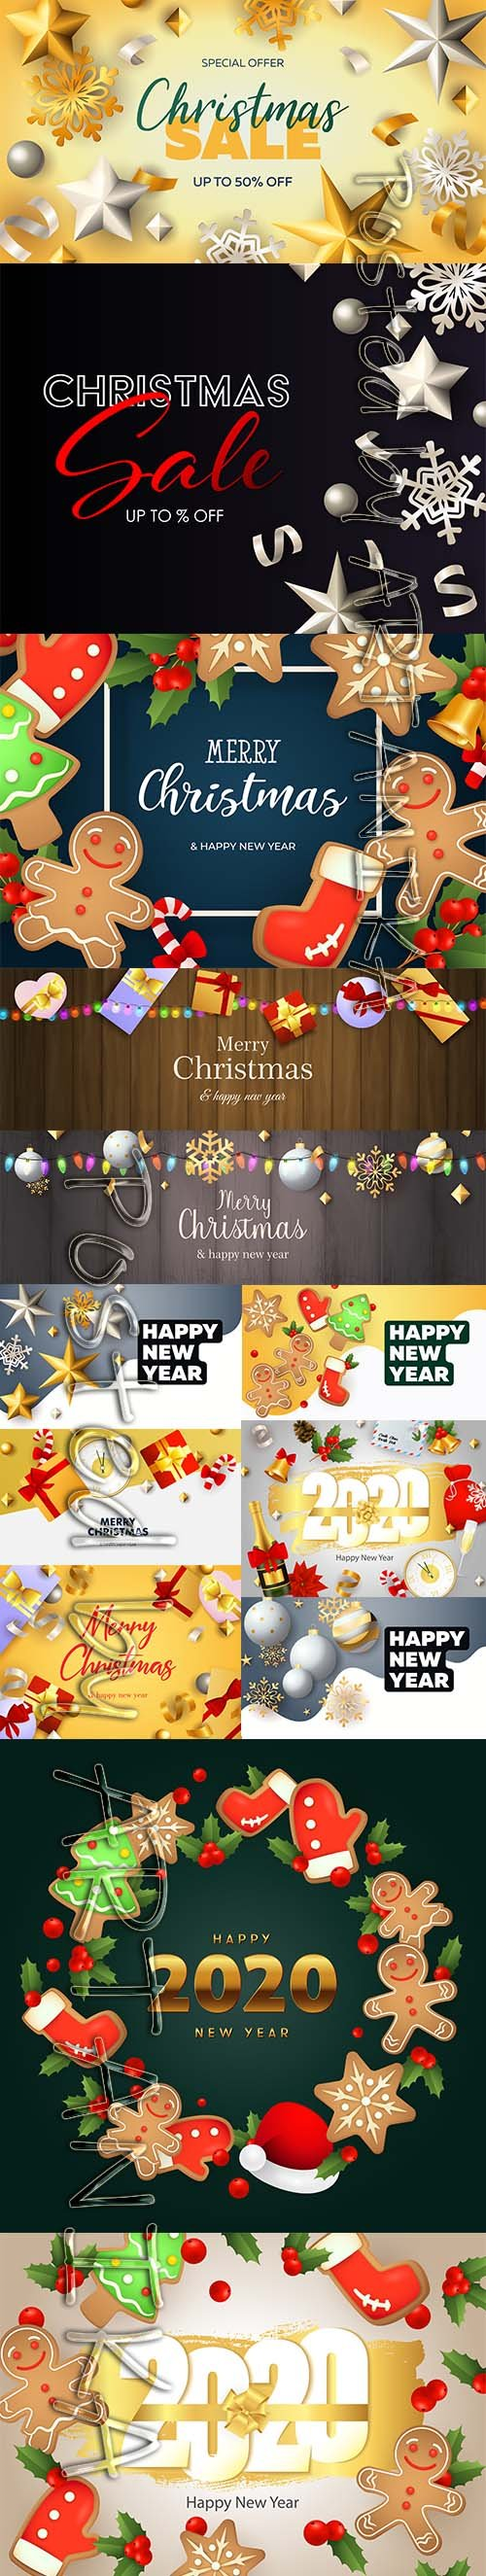 Christmas Sale Banner and Happy New Year Backgrounds Vol 2